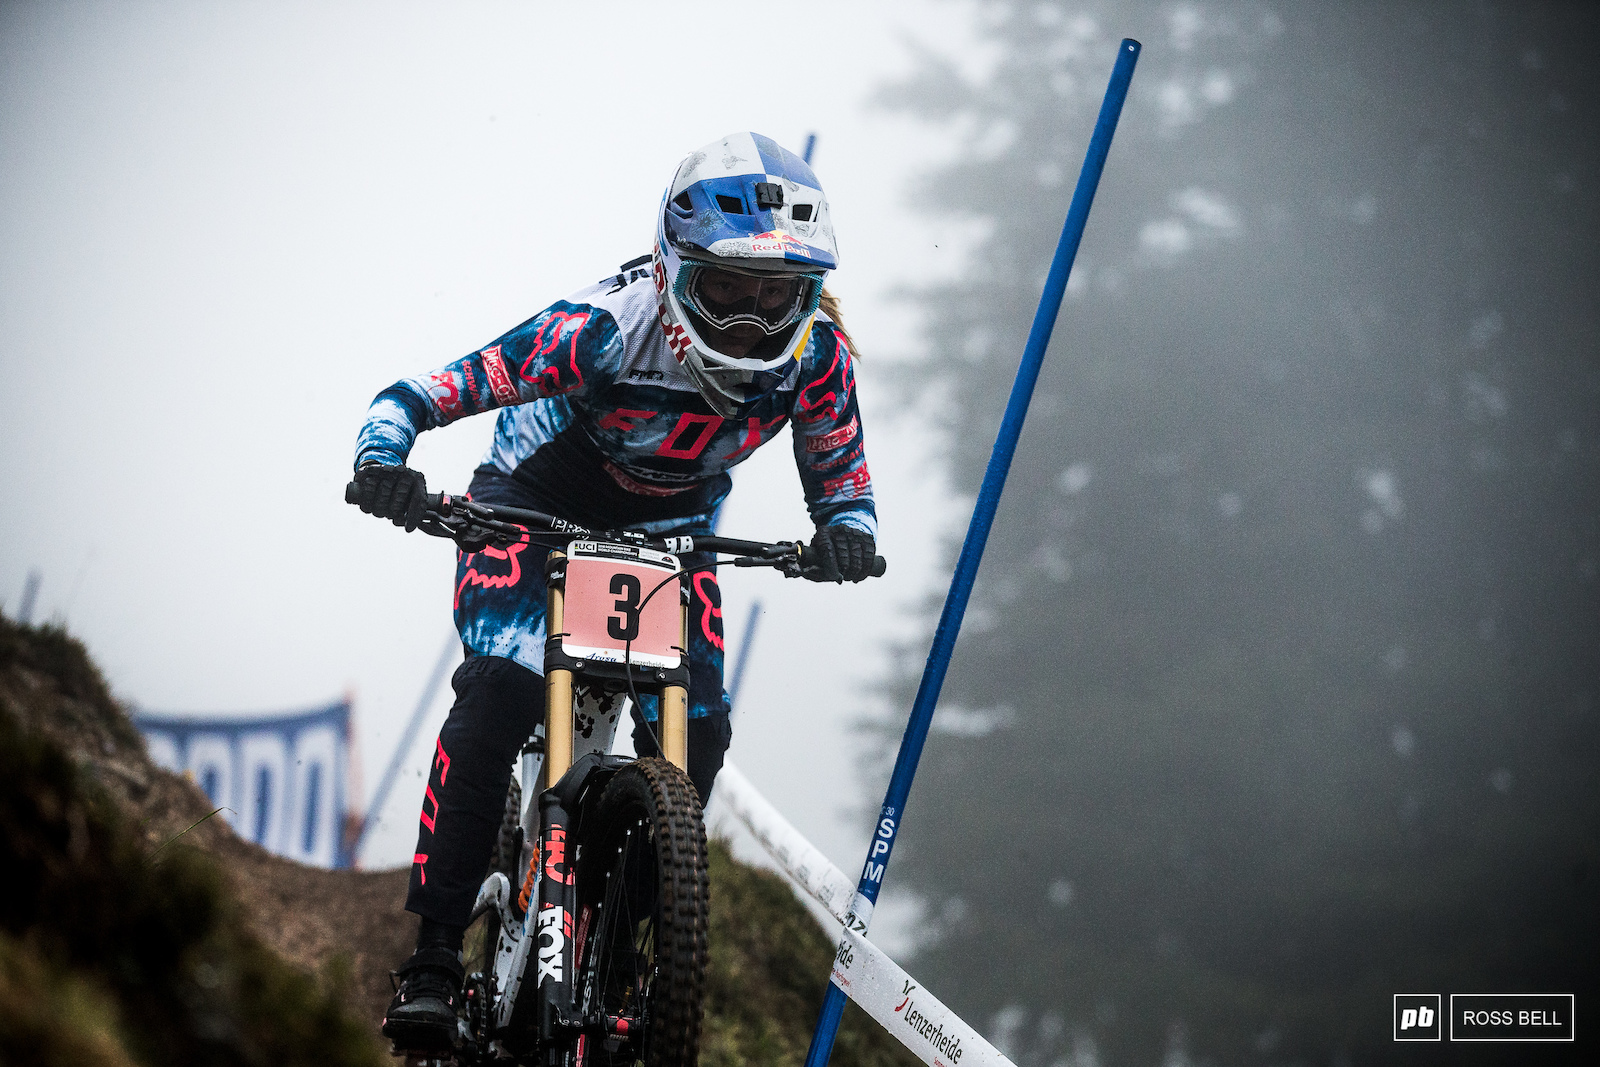 Tahnee Seagrave popping through the morning mist. She went down in her quali run but still came a close second to Rachel Atherton. Game on.